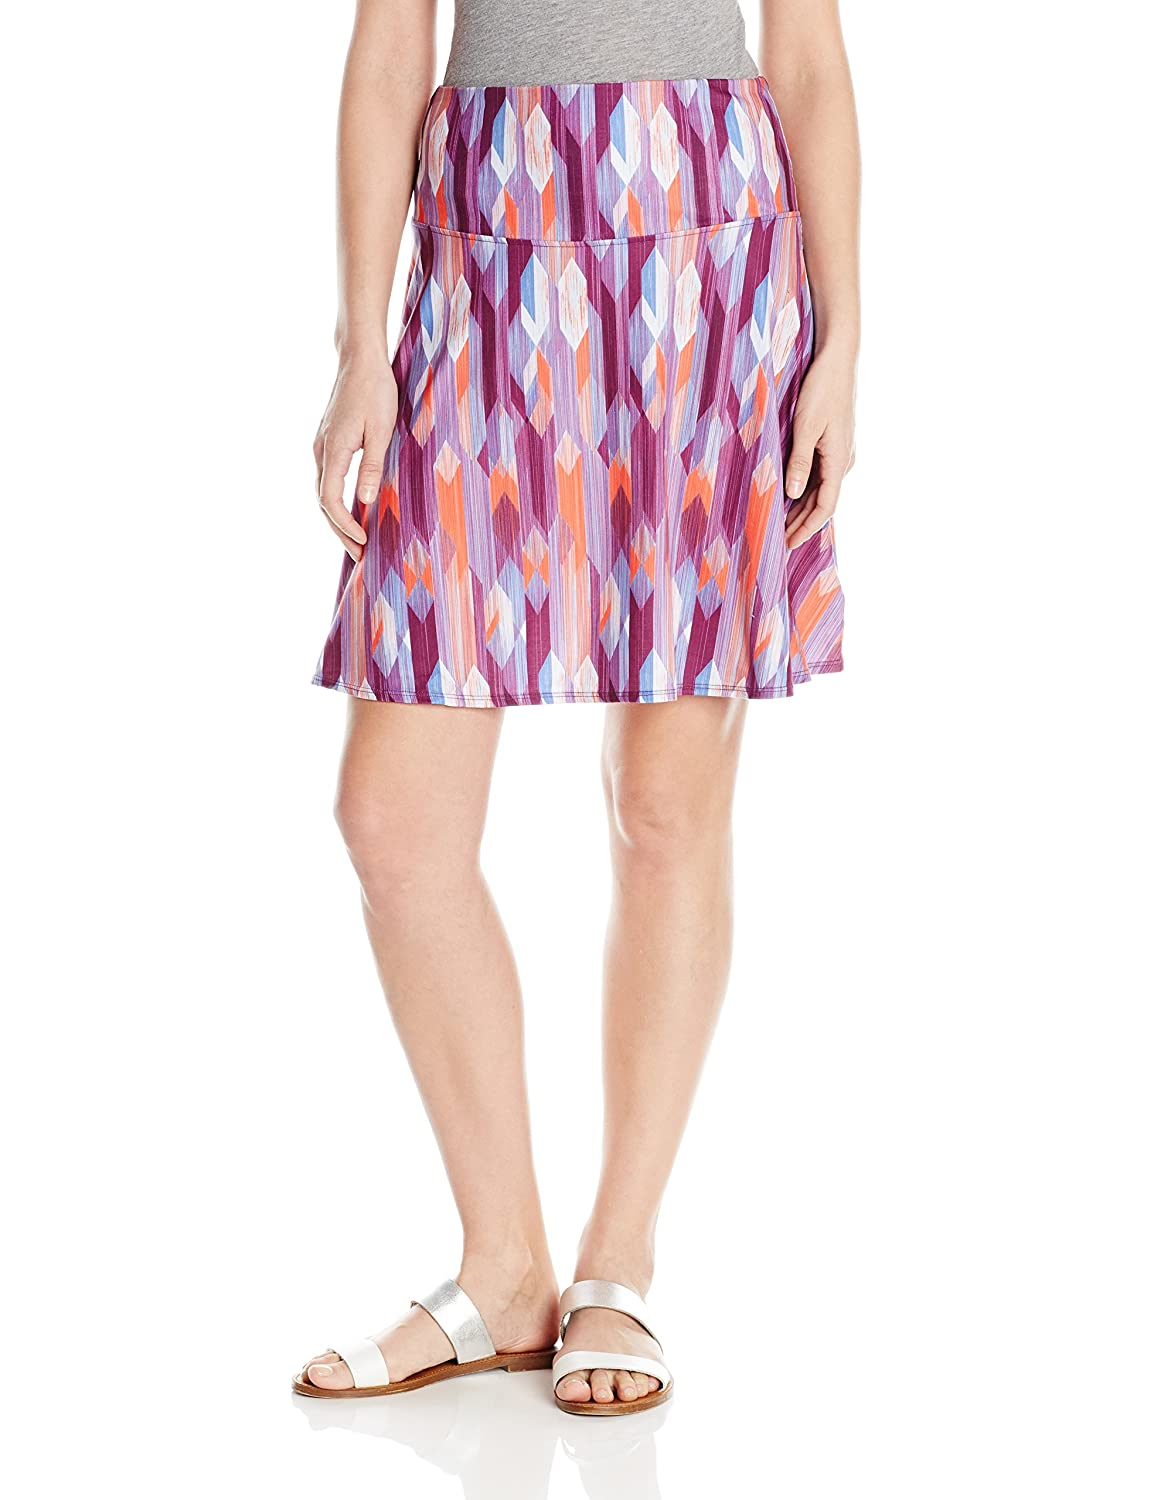 Grapevine Gemstone prAna Women's Taj Printed Skirt